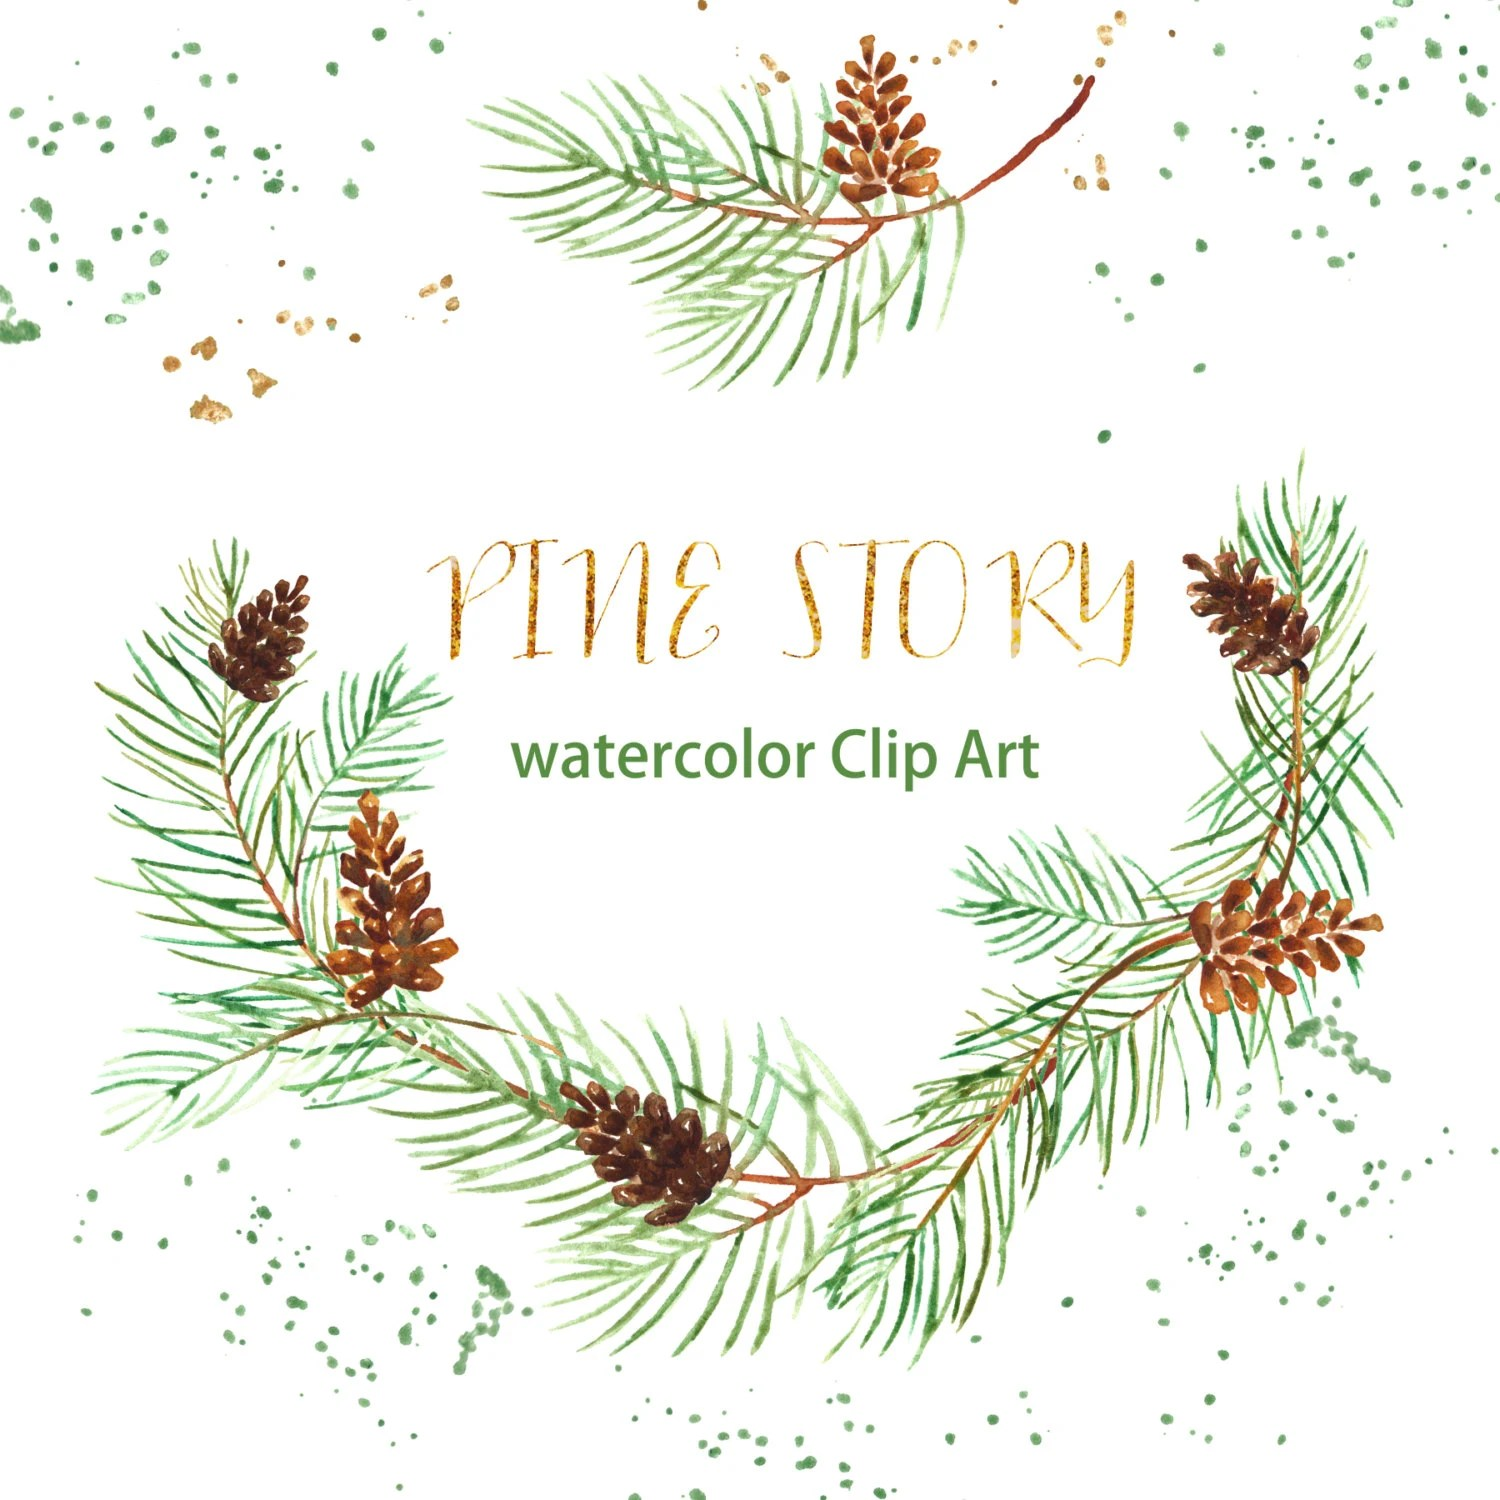 Wedding Invitation Card With Name Editing Pine Watercolor Clip Art Hand Drawn. Winter Watercolor Light